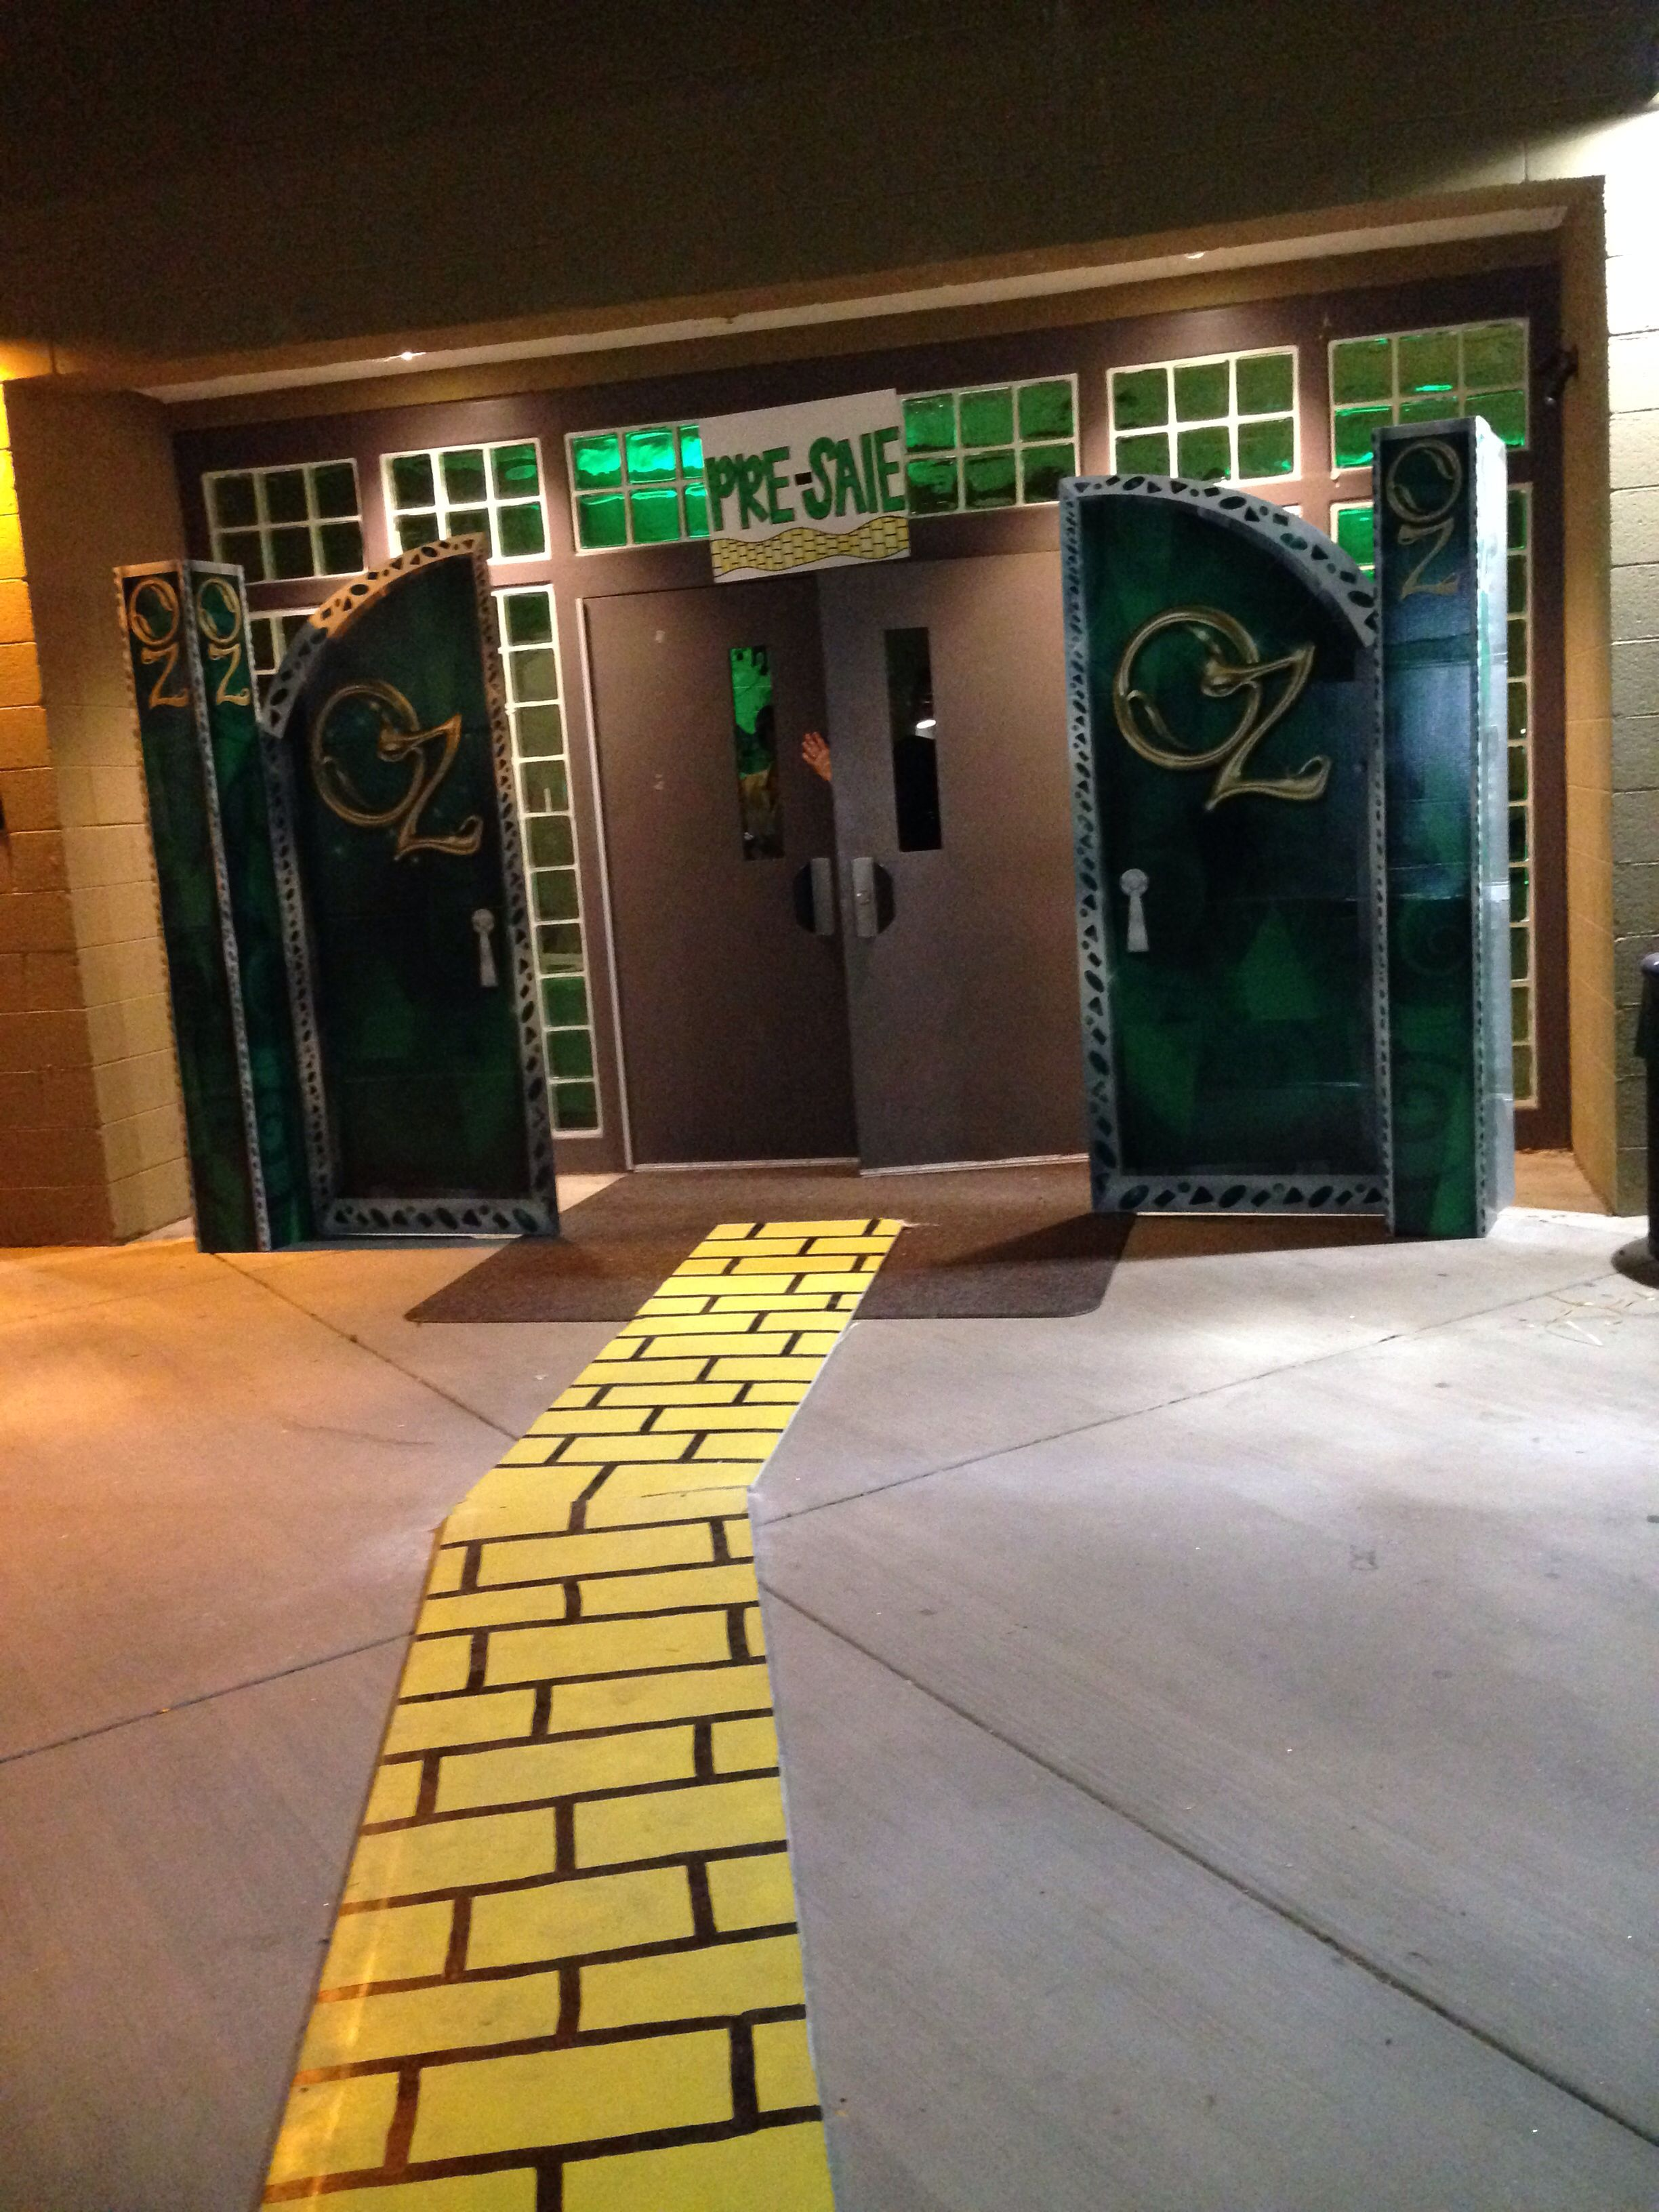 Wizard of oz homecoming spirit week theme with Oz doors and DIY - Wizard Of Oz Halloween Decorations